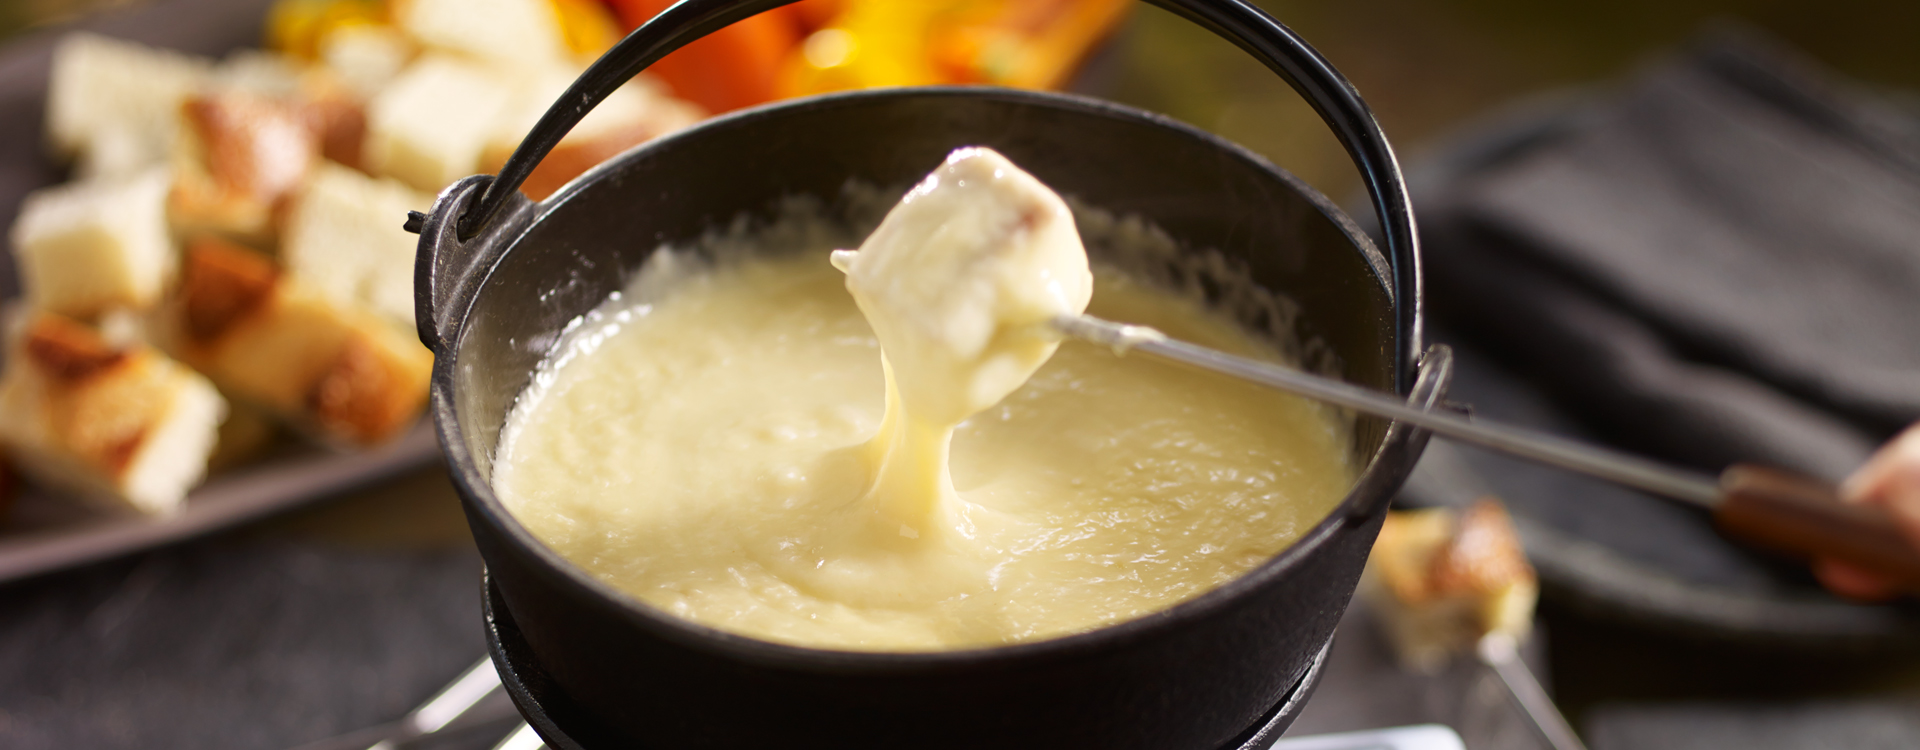 Hoppy Cheese Fondue